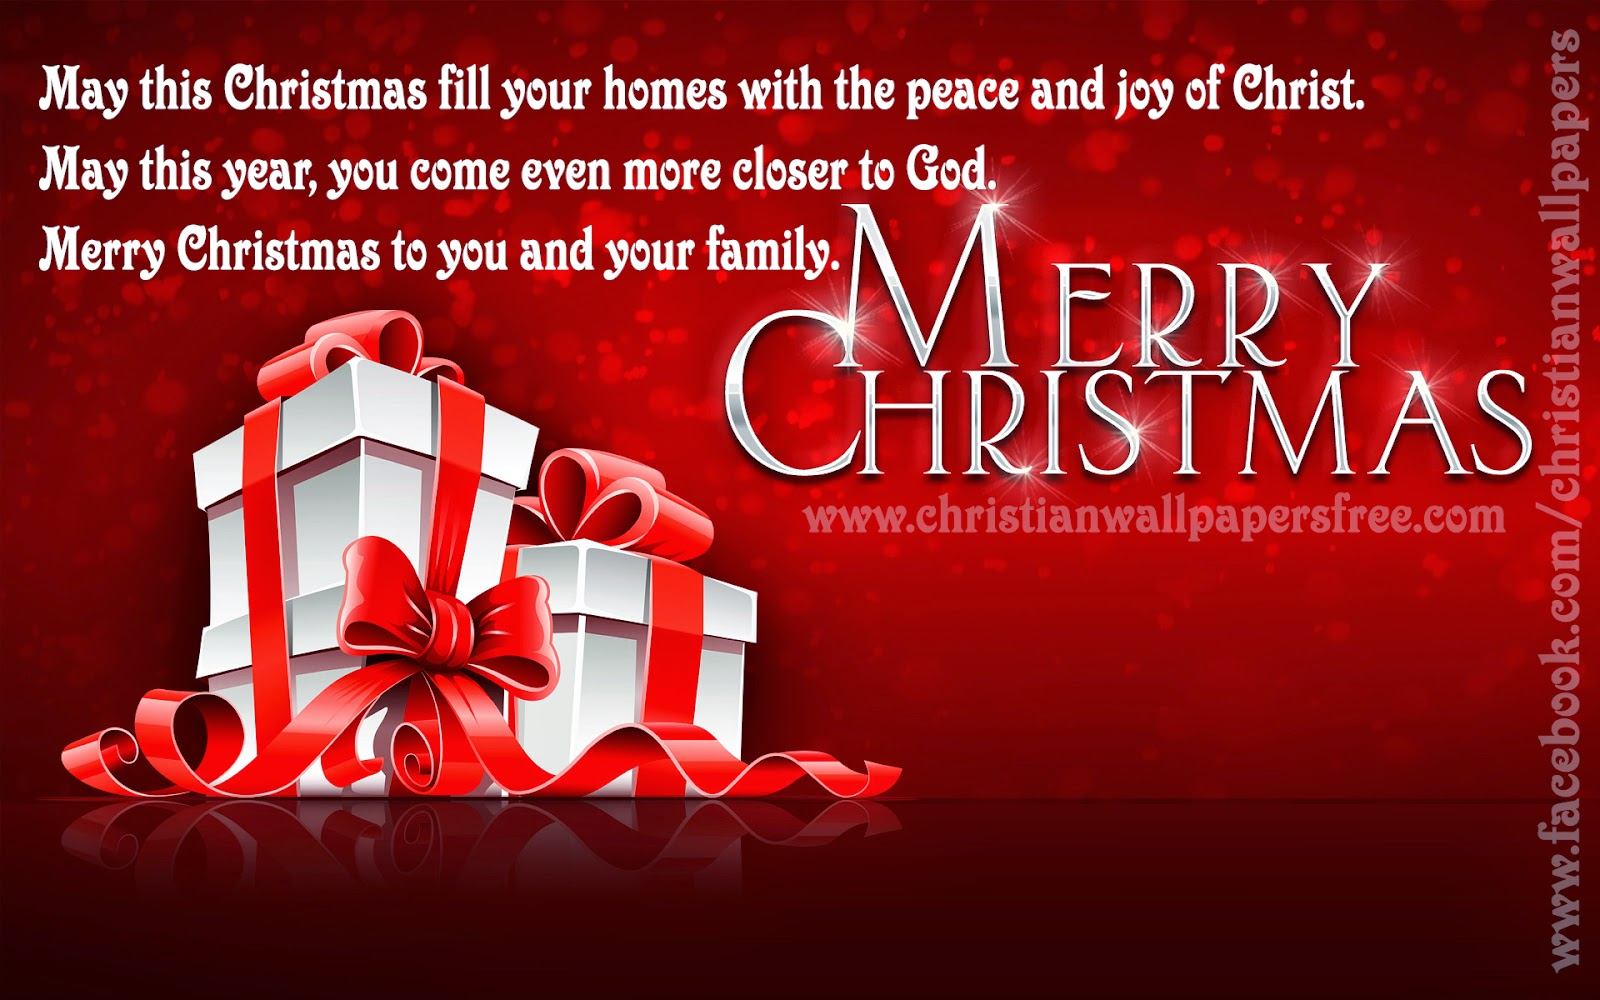 Download Hd Christmas New Year 2018 Bible Verse Greetings Card